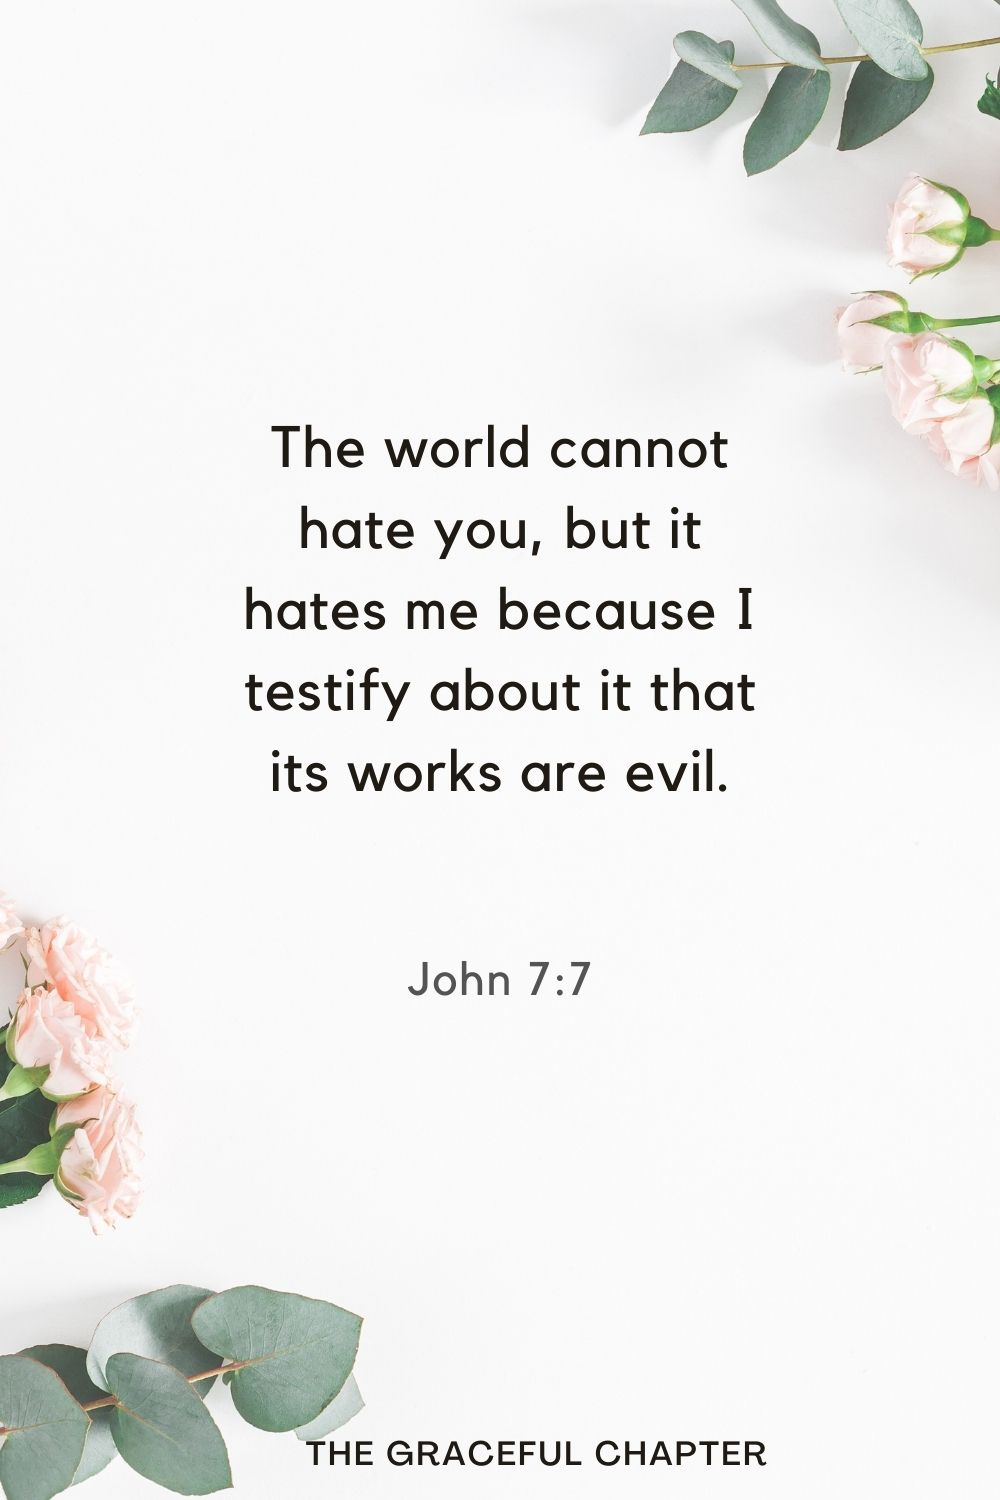 The world cannot hate you, but it hates me because I testify about it that its works are evil. John 7:7